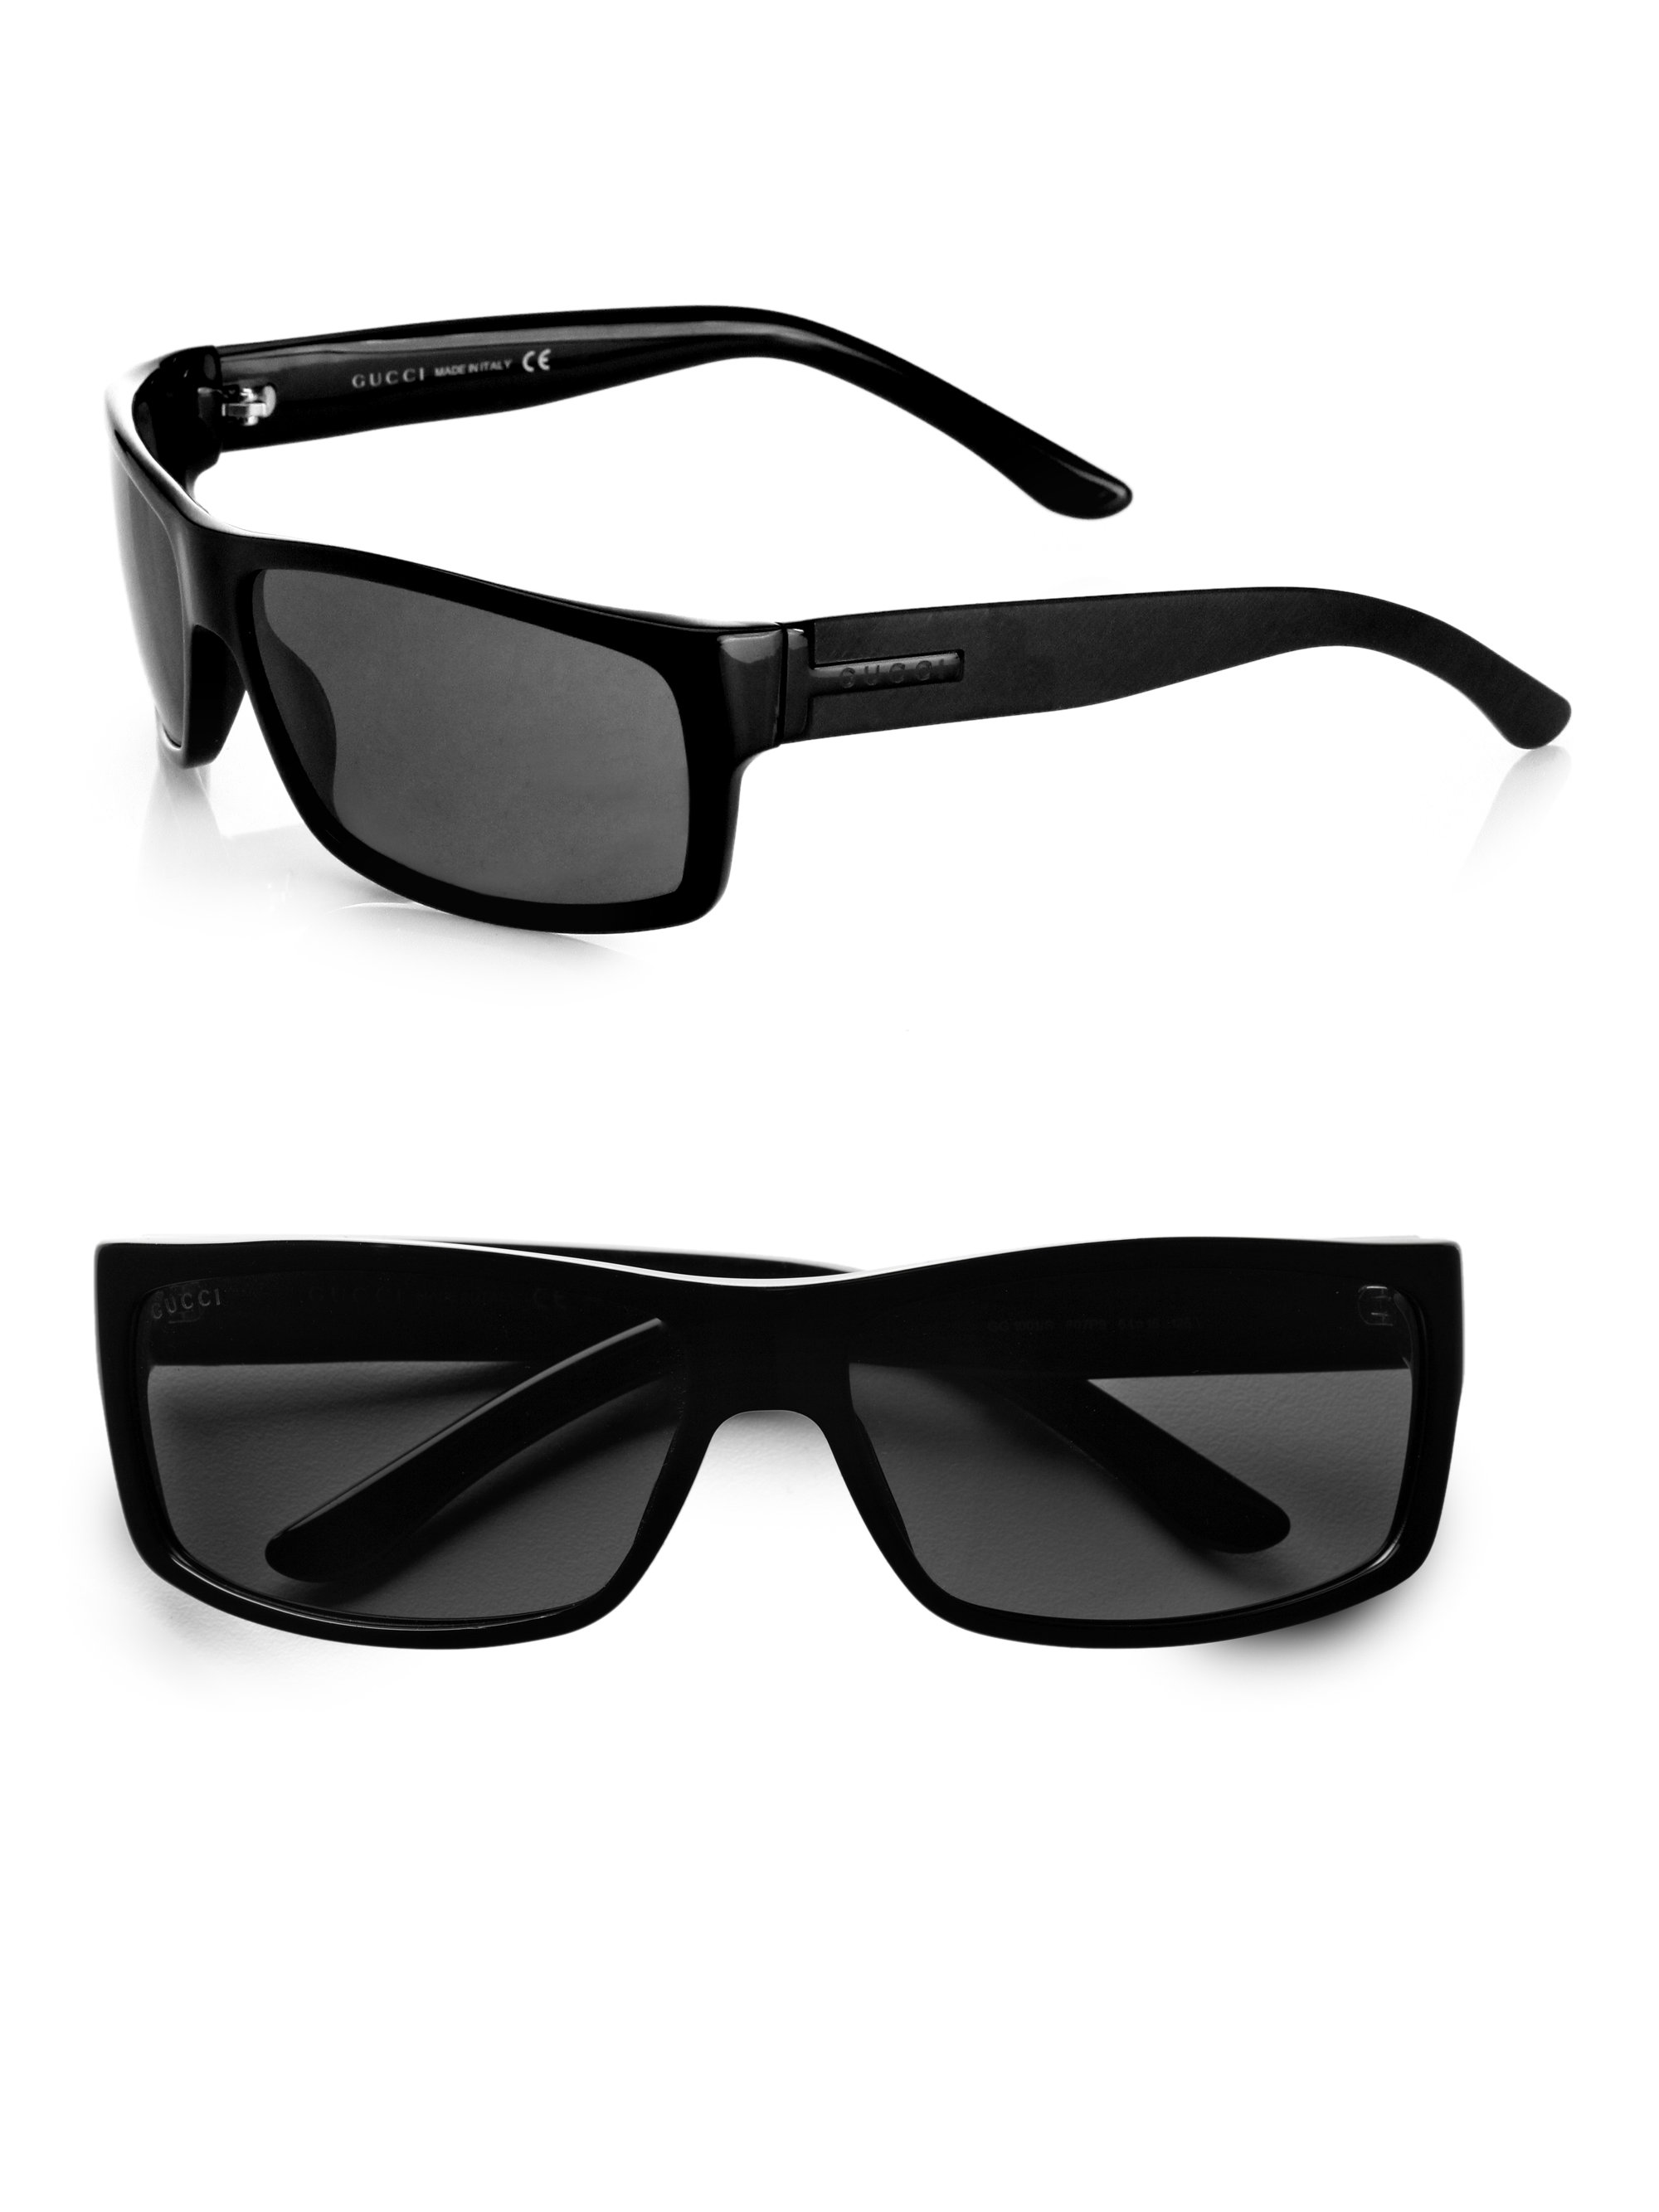 Men Gucci Sunglasses  gucci rectangular sunglasses in black for men lyst